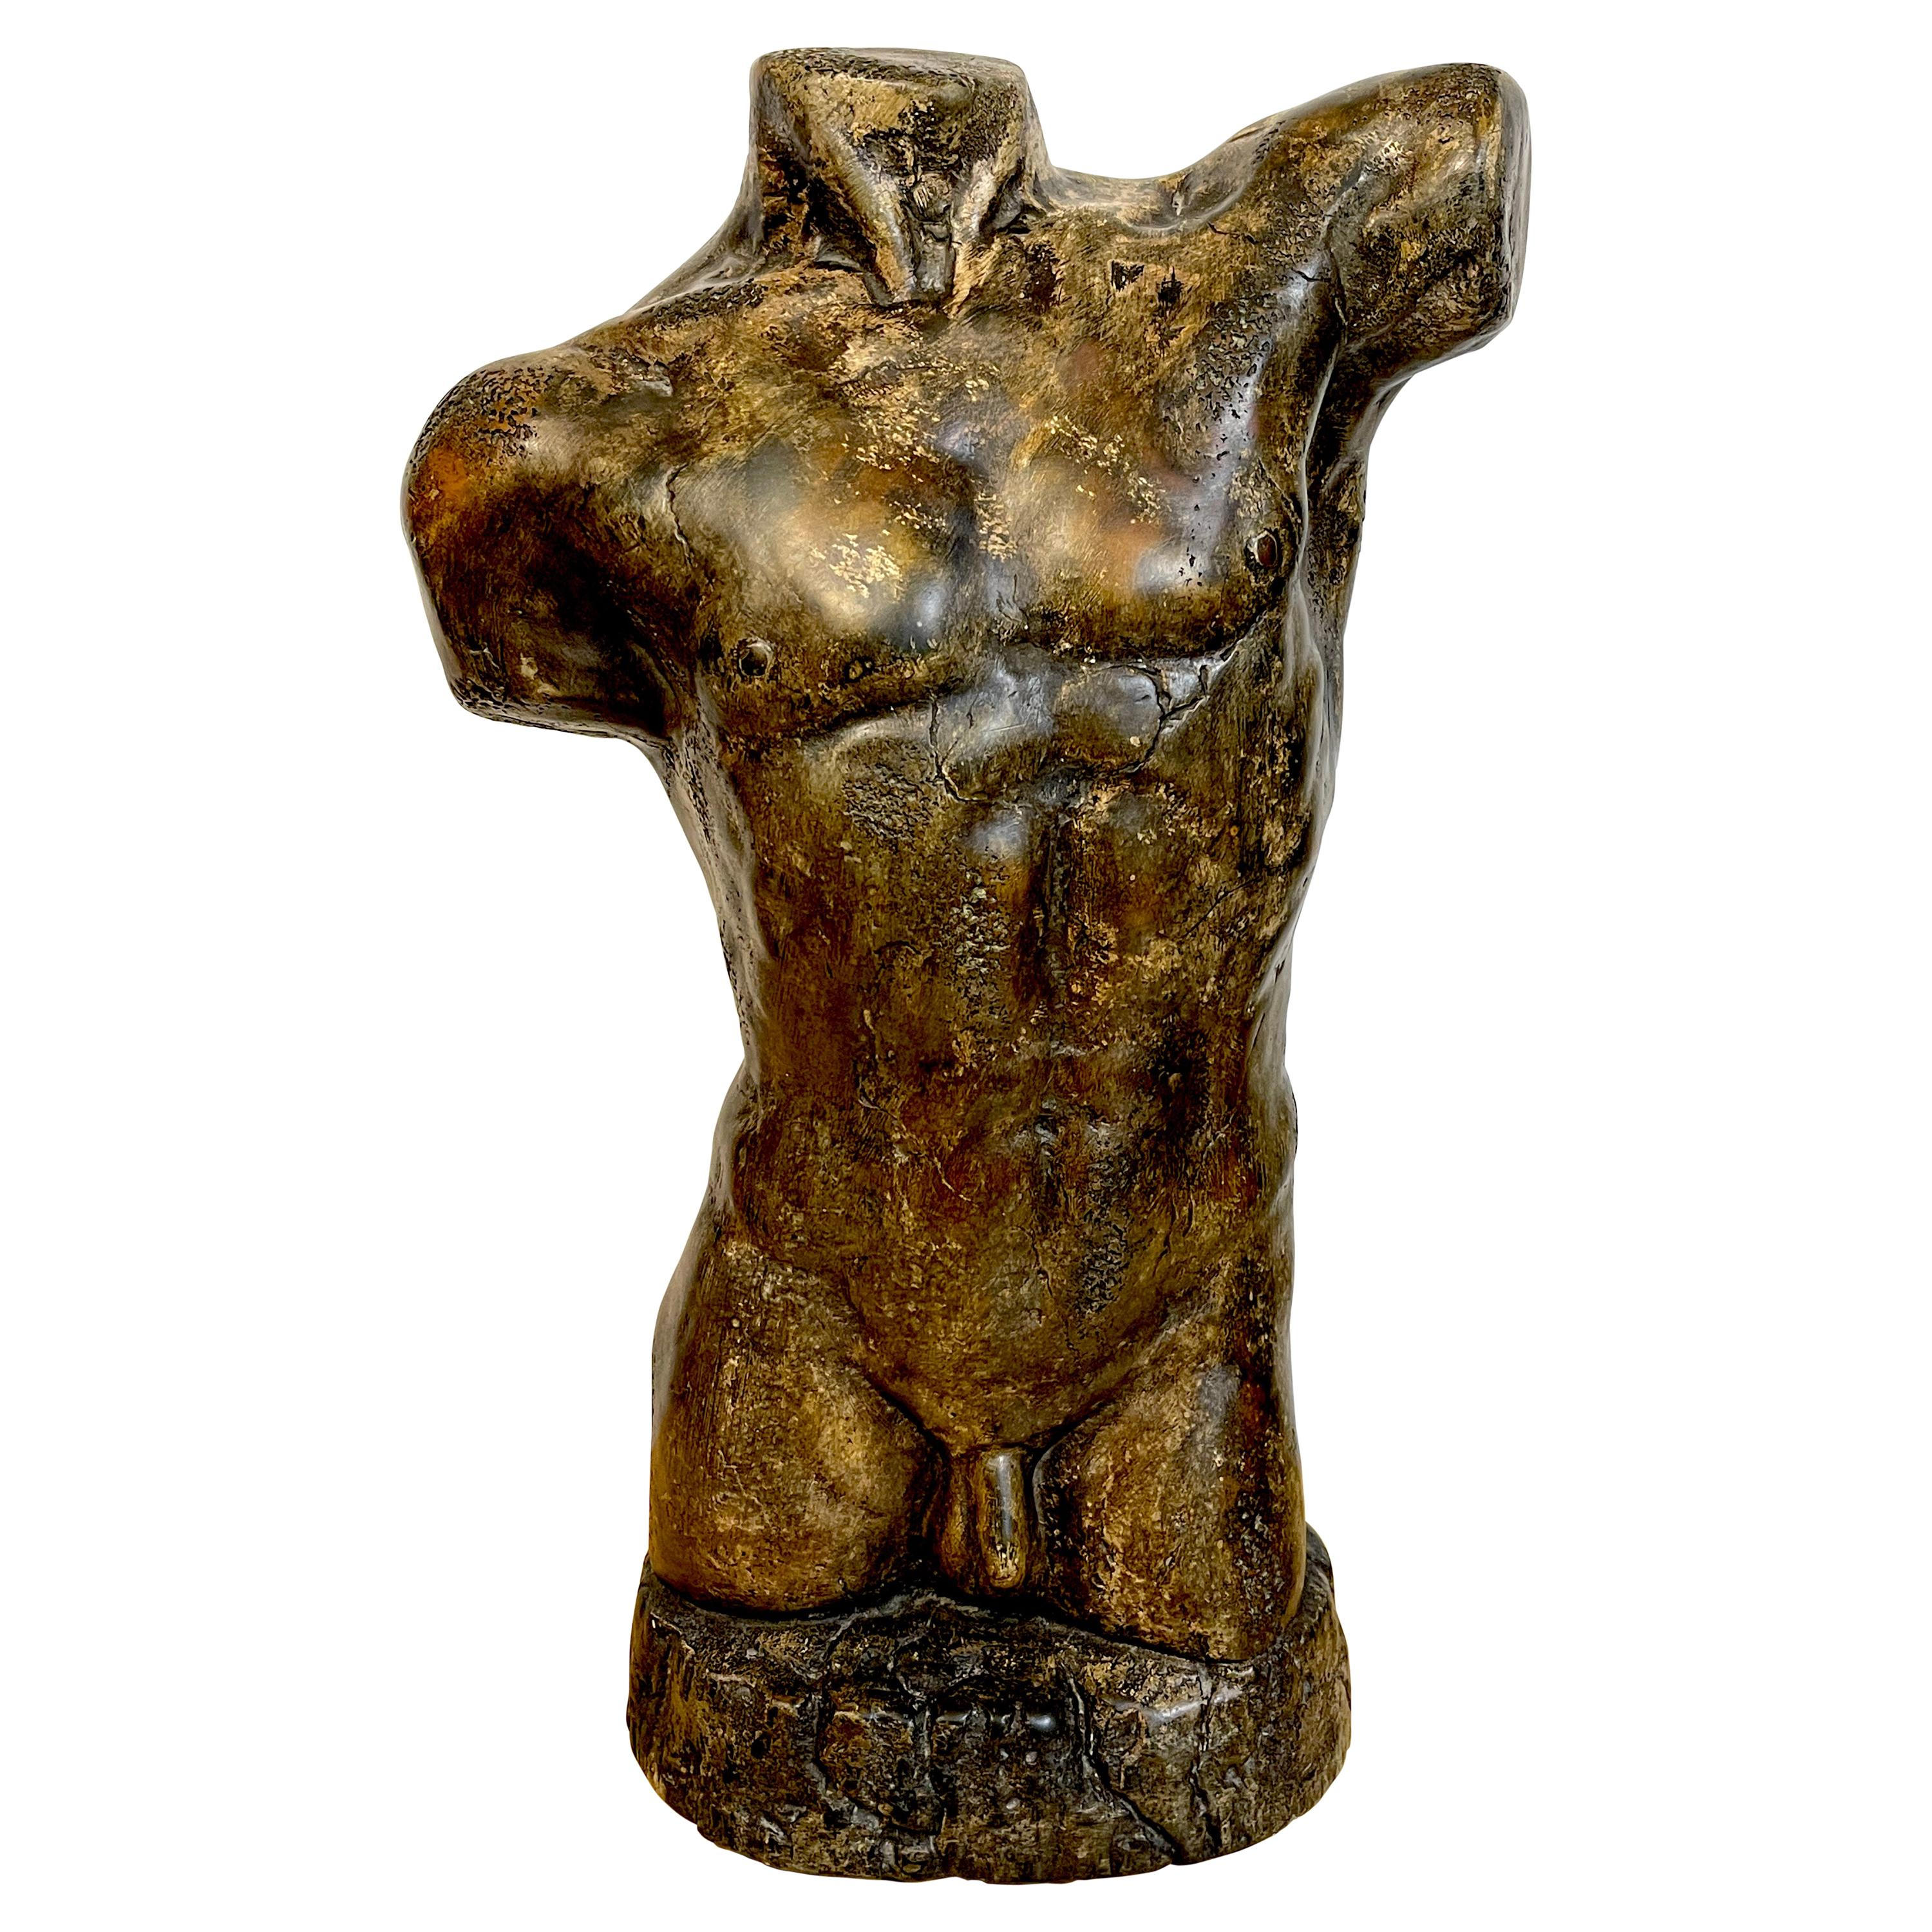 French Modern Bronzed Plaster Sculpture of a Male Nude Torso